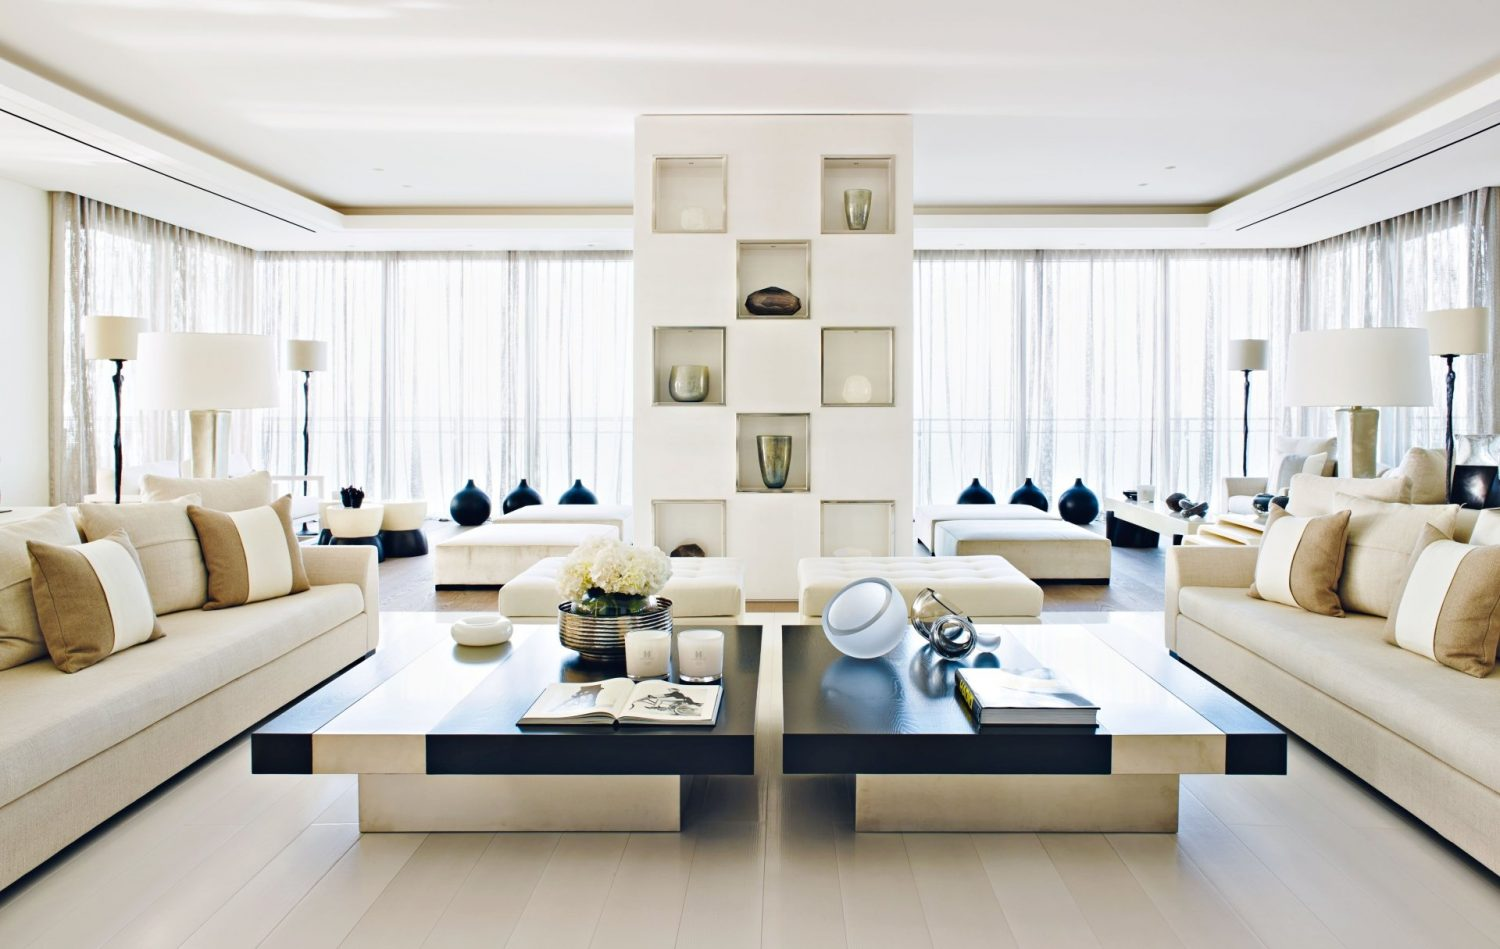 london The Best 25 Interior Designers From London thumb 1920 943658 scaled